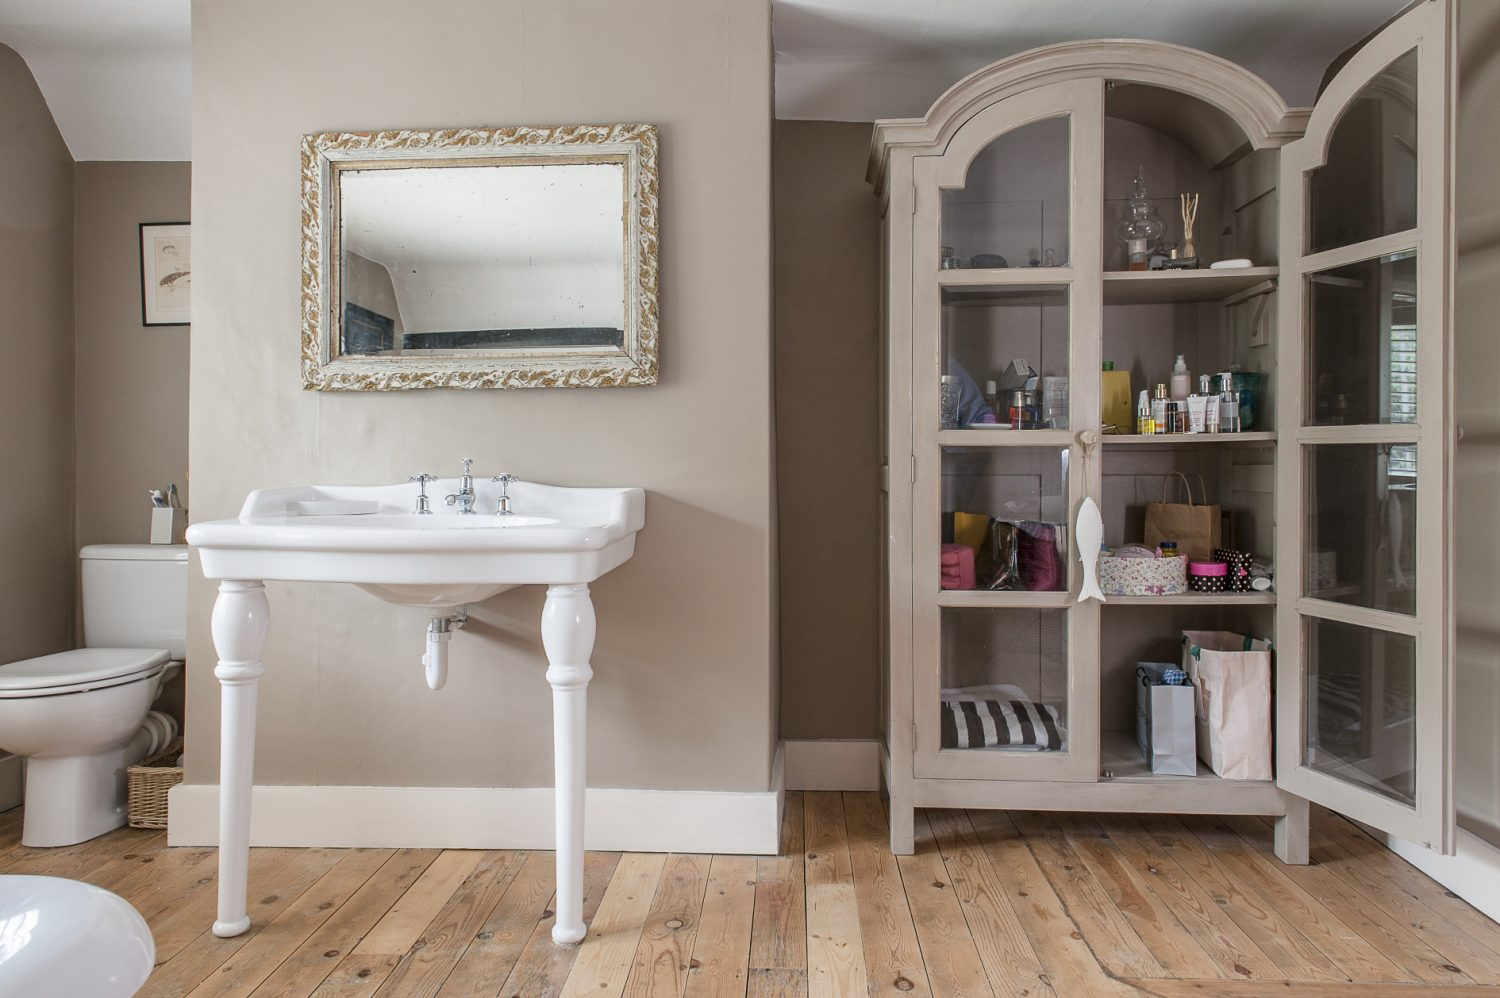 The elegant bathroom is painted in Farrow & Ball London Stone